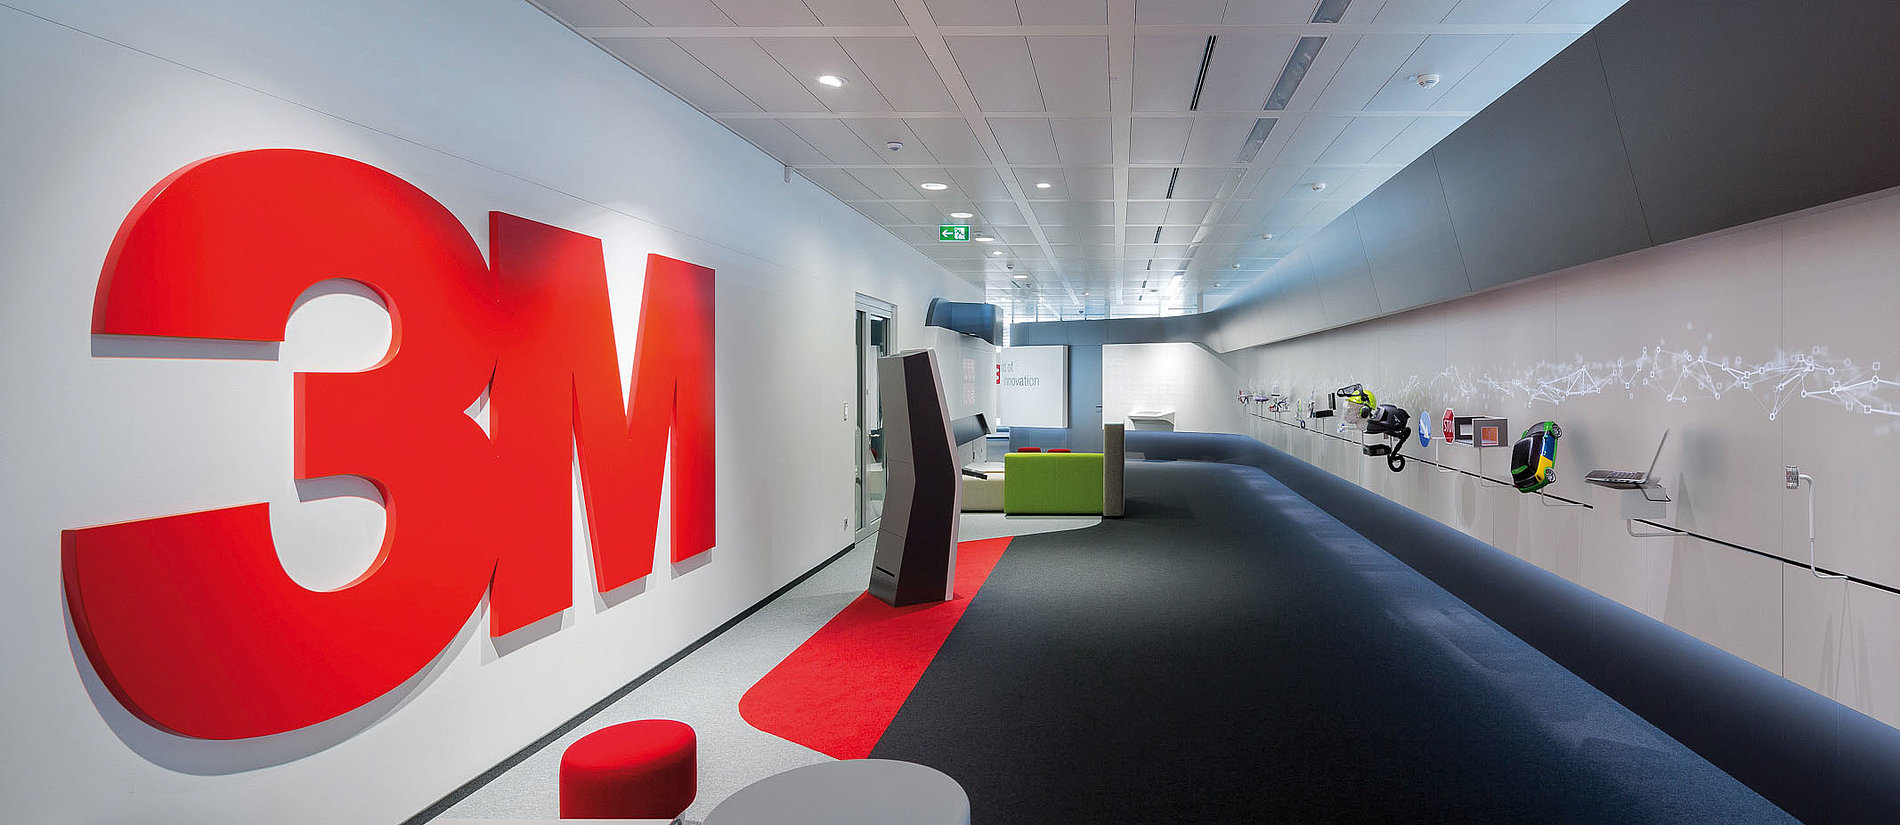 Please touch! 14 metres of innovations for 3M. | Red Dot Design Award